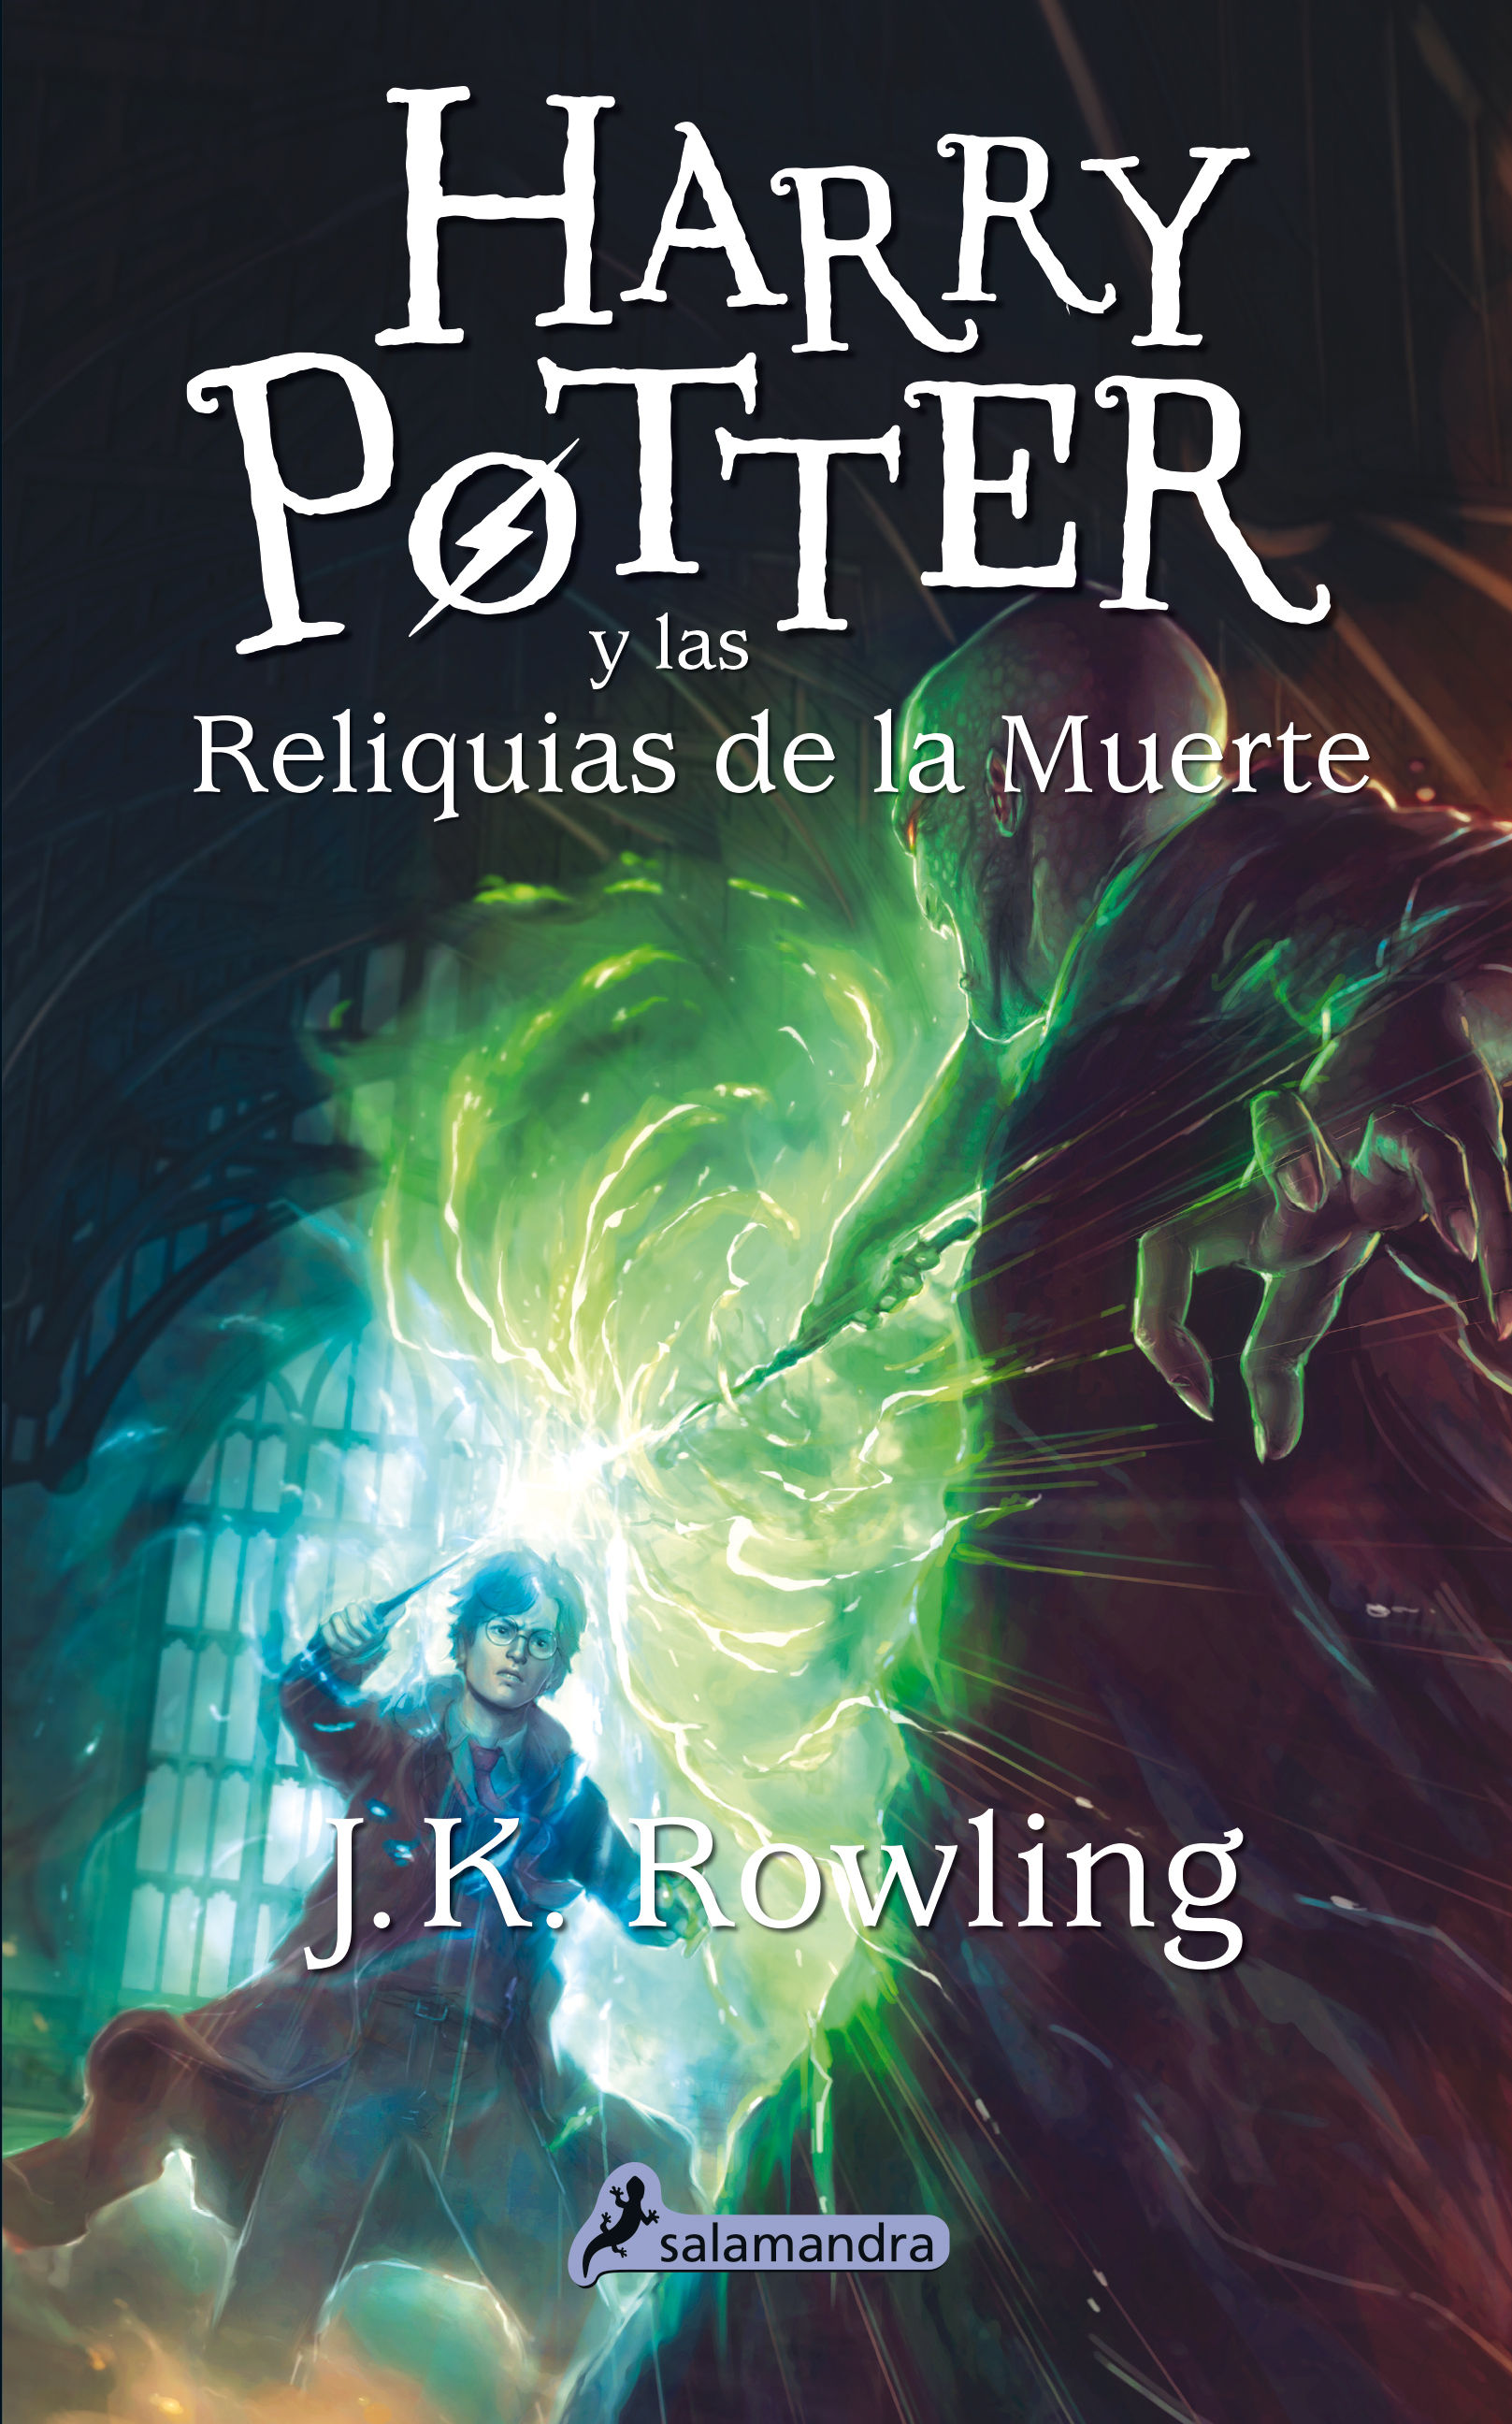 HARRY POTTER Y LAS RELIQUIAS DE LA MUERTE (HARRY POTTER 7)